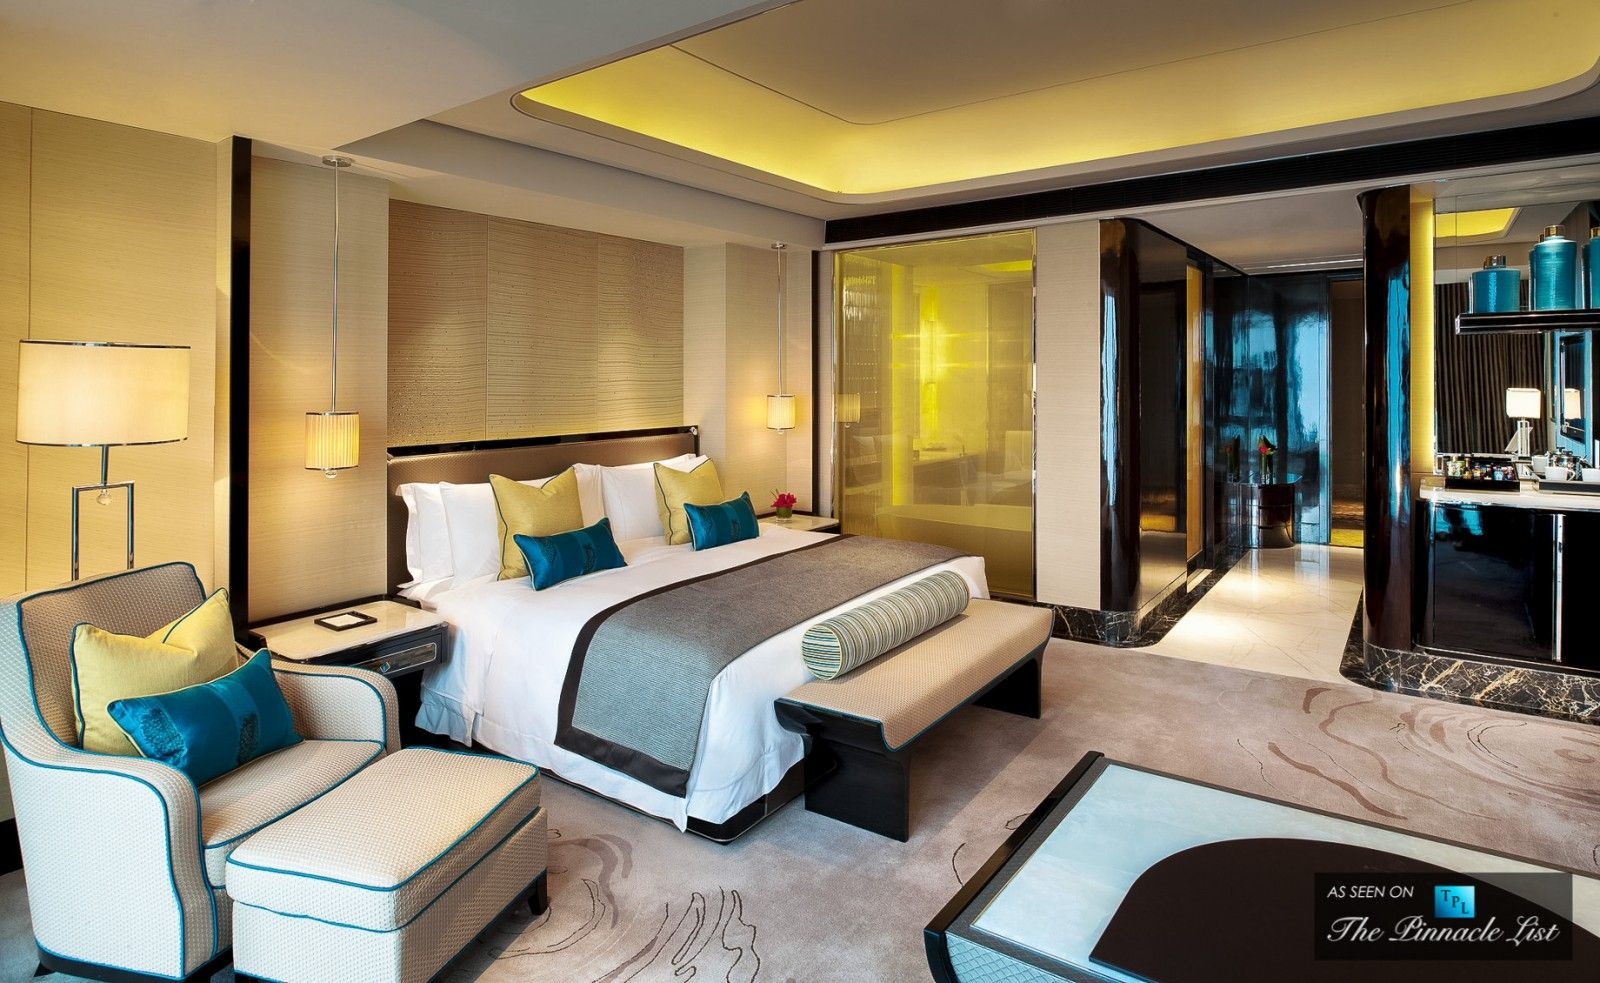 Comfort abounds in this hotel suite st regis luxury - Design your room images ...